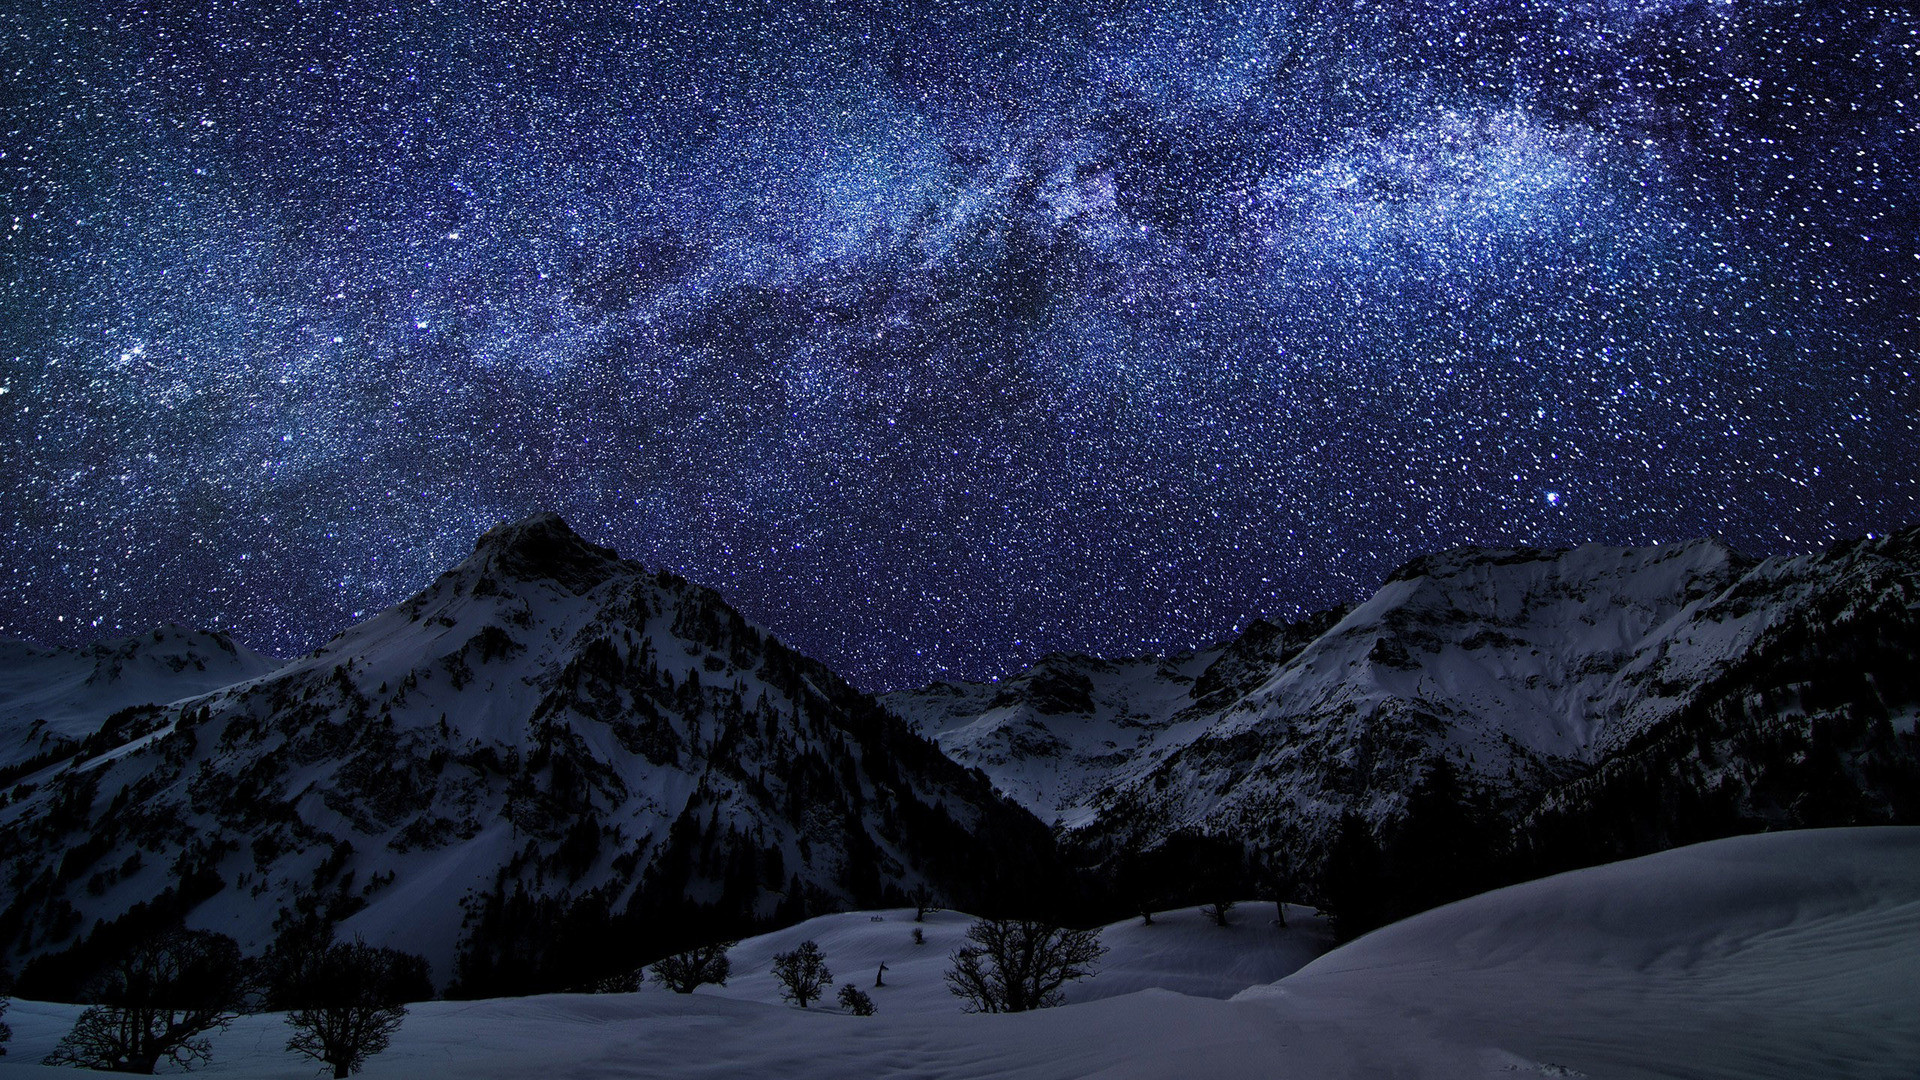 Star struck - Amazing photographs of the milky way over